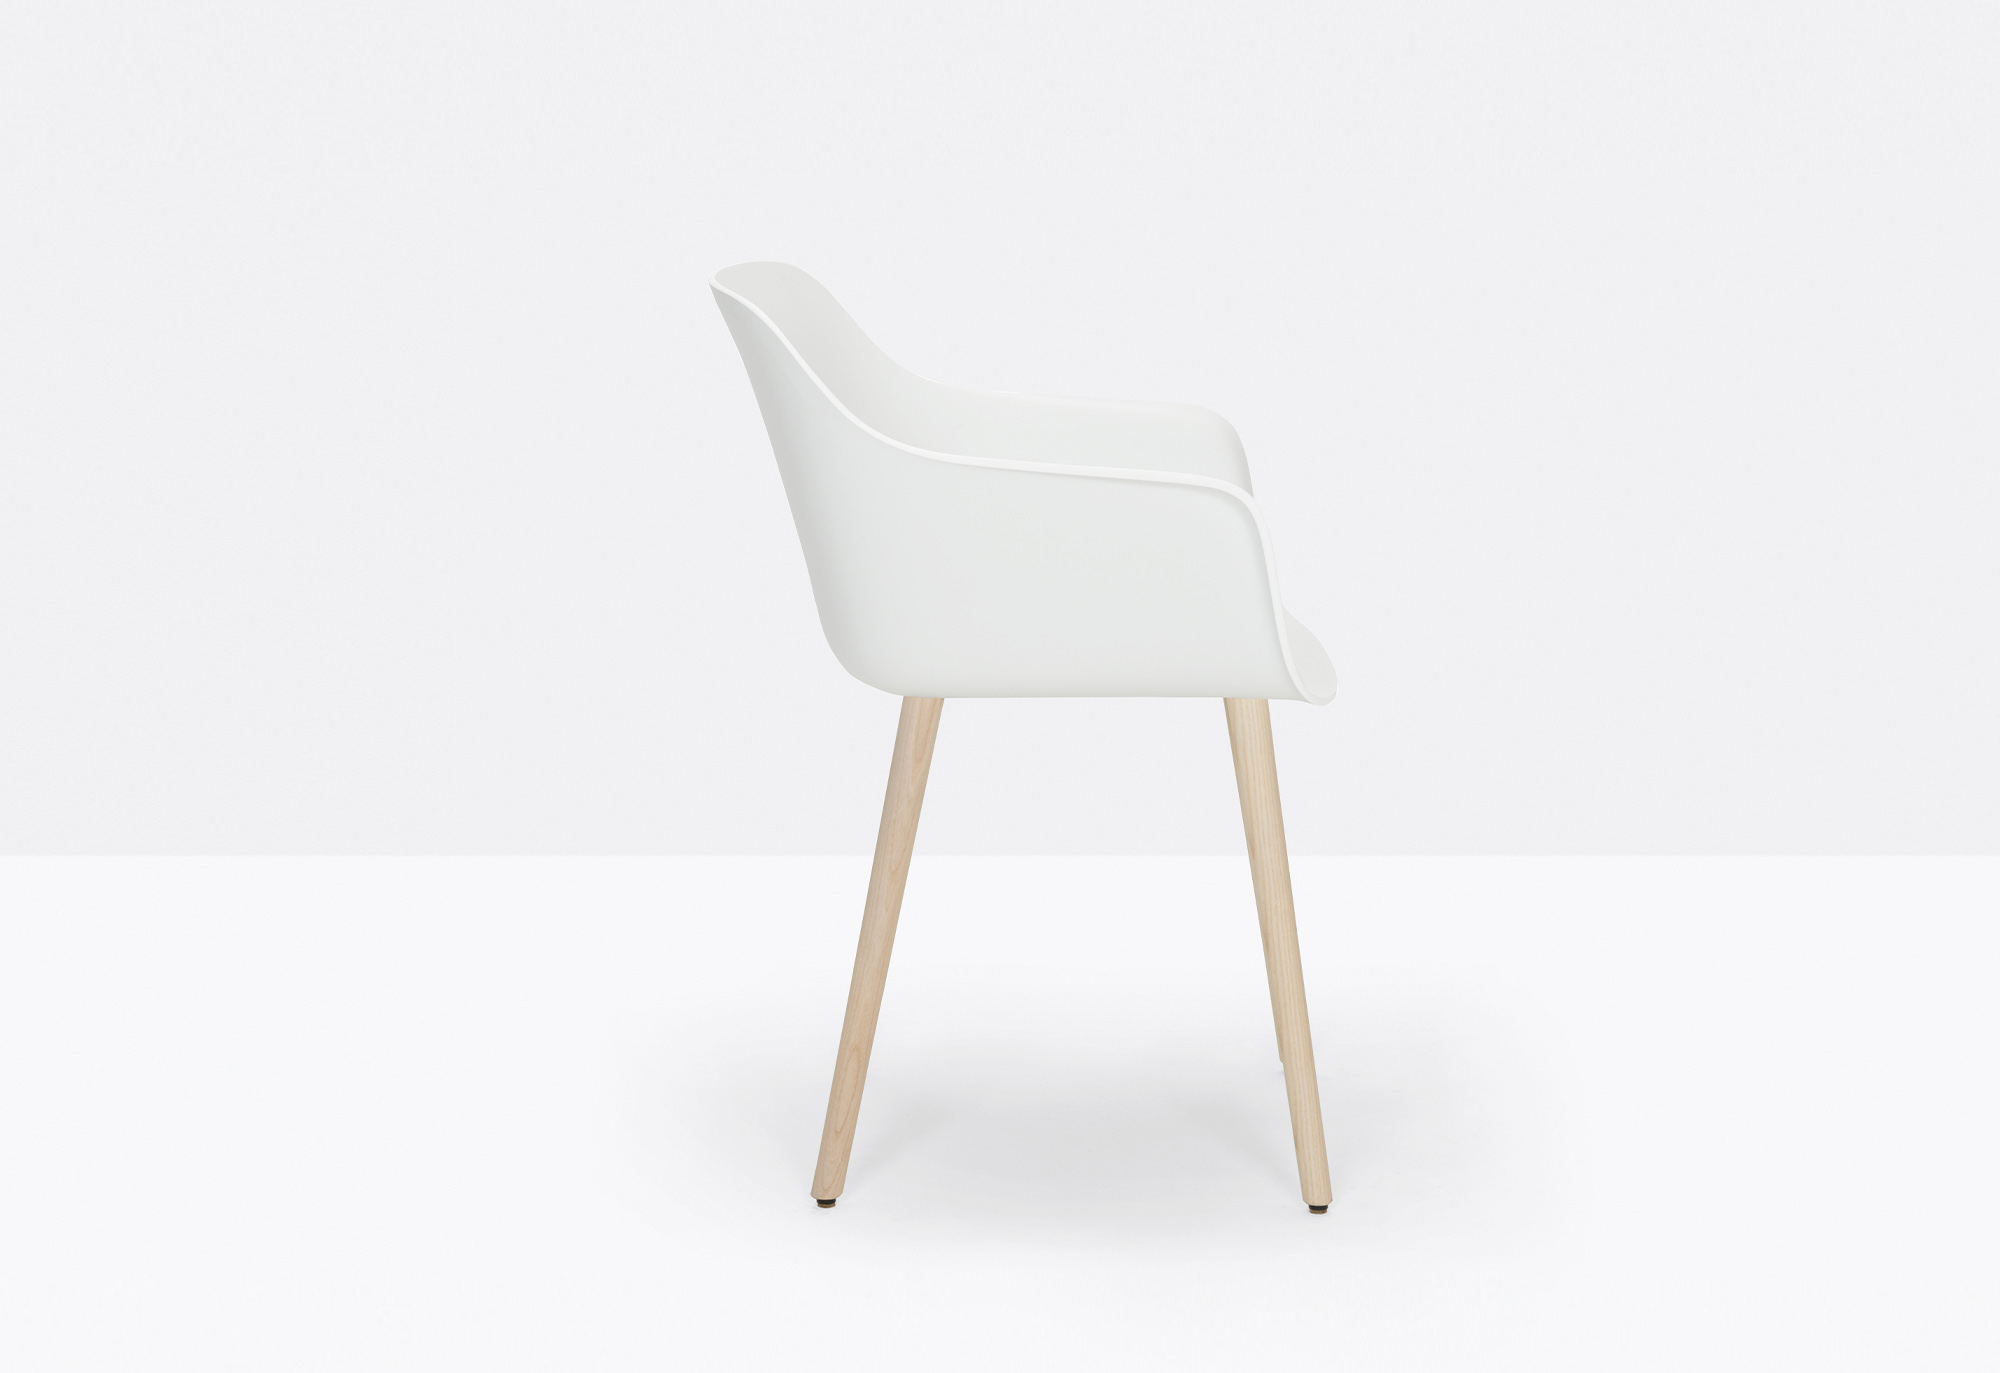 Babila XL Armchair - Babila XL fits harmoniously within a collection poised between tradition and innovation. An armchair with a polypropylene shell stands out for the large dimension of its seat and armrests. Solid ash wood legs.